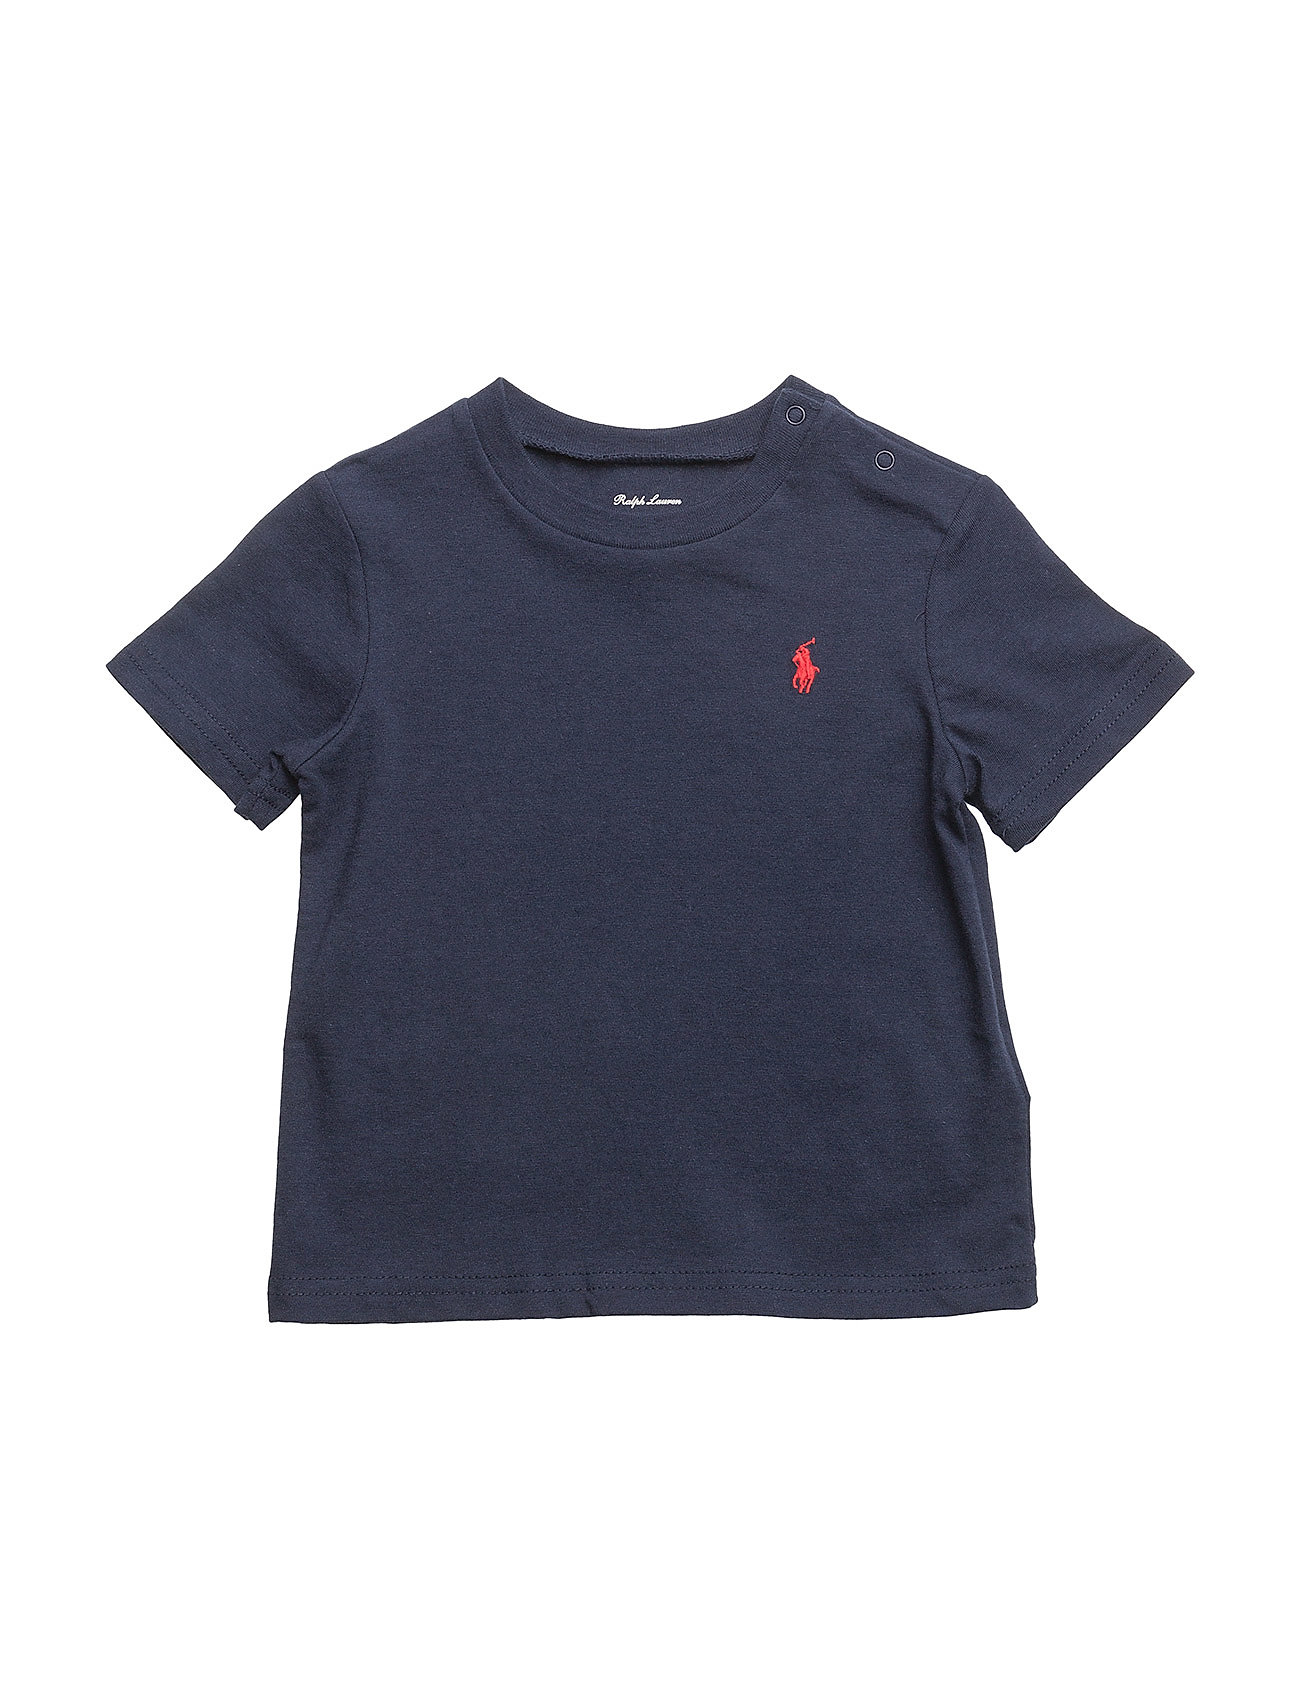 Ralph Lauren Baby Cotton Jersey Crewneck Tee - CRUISE NAVY